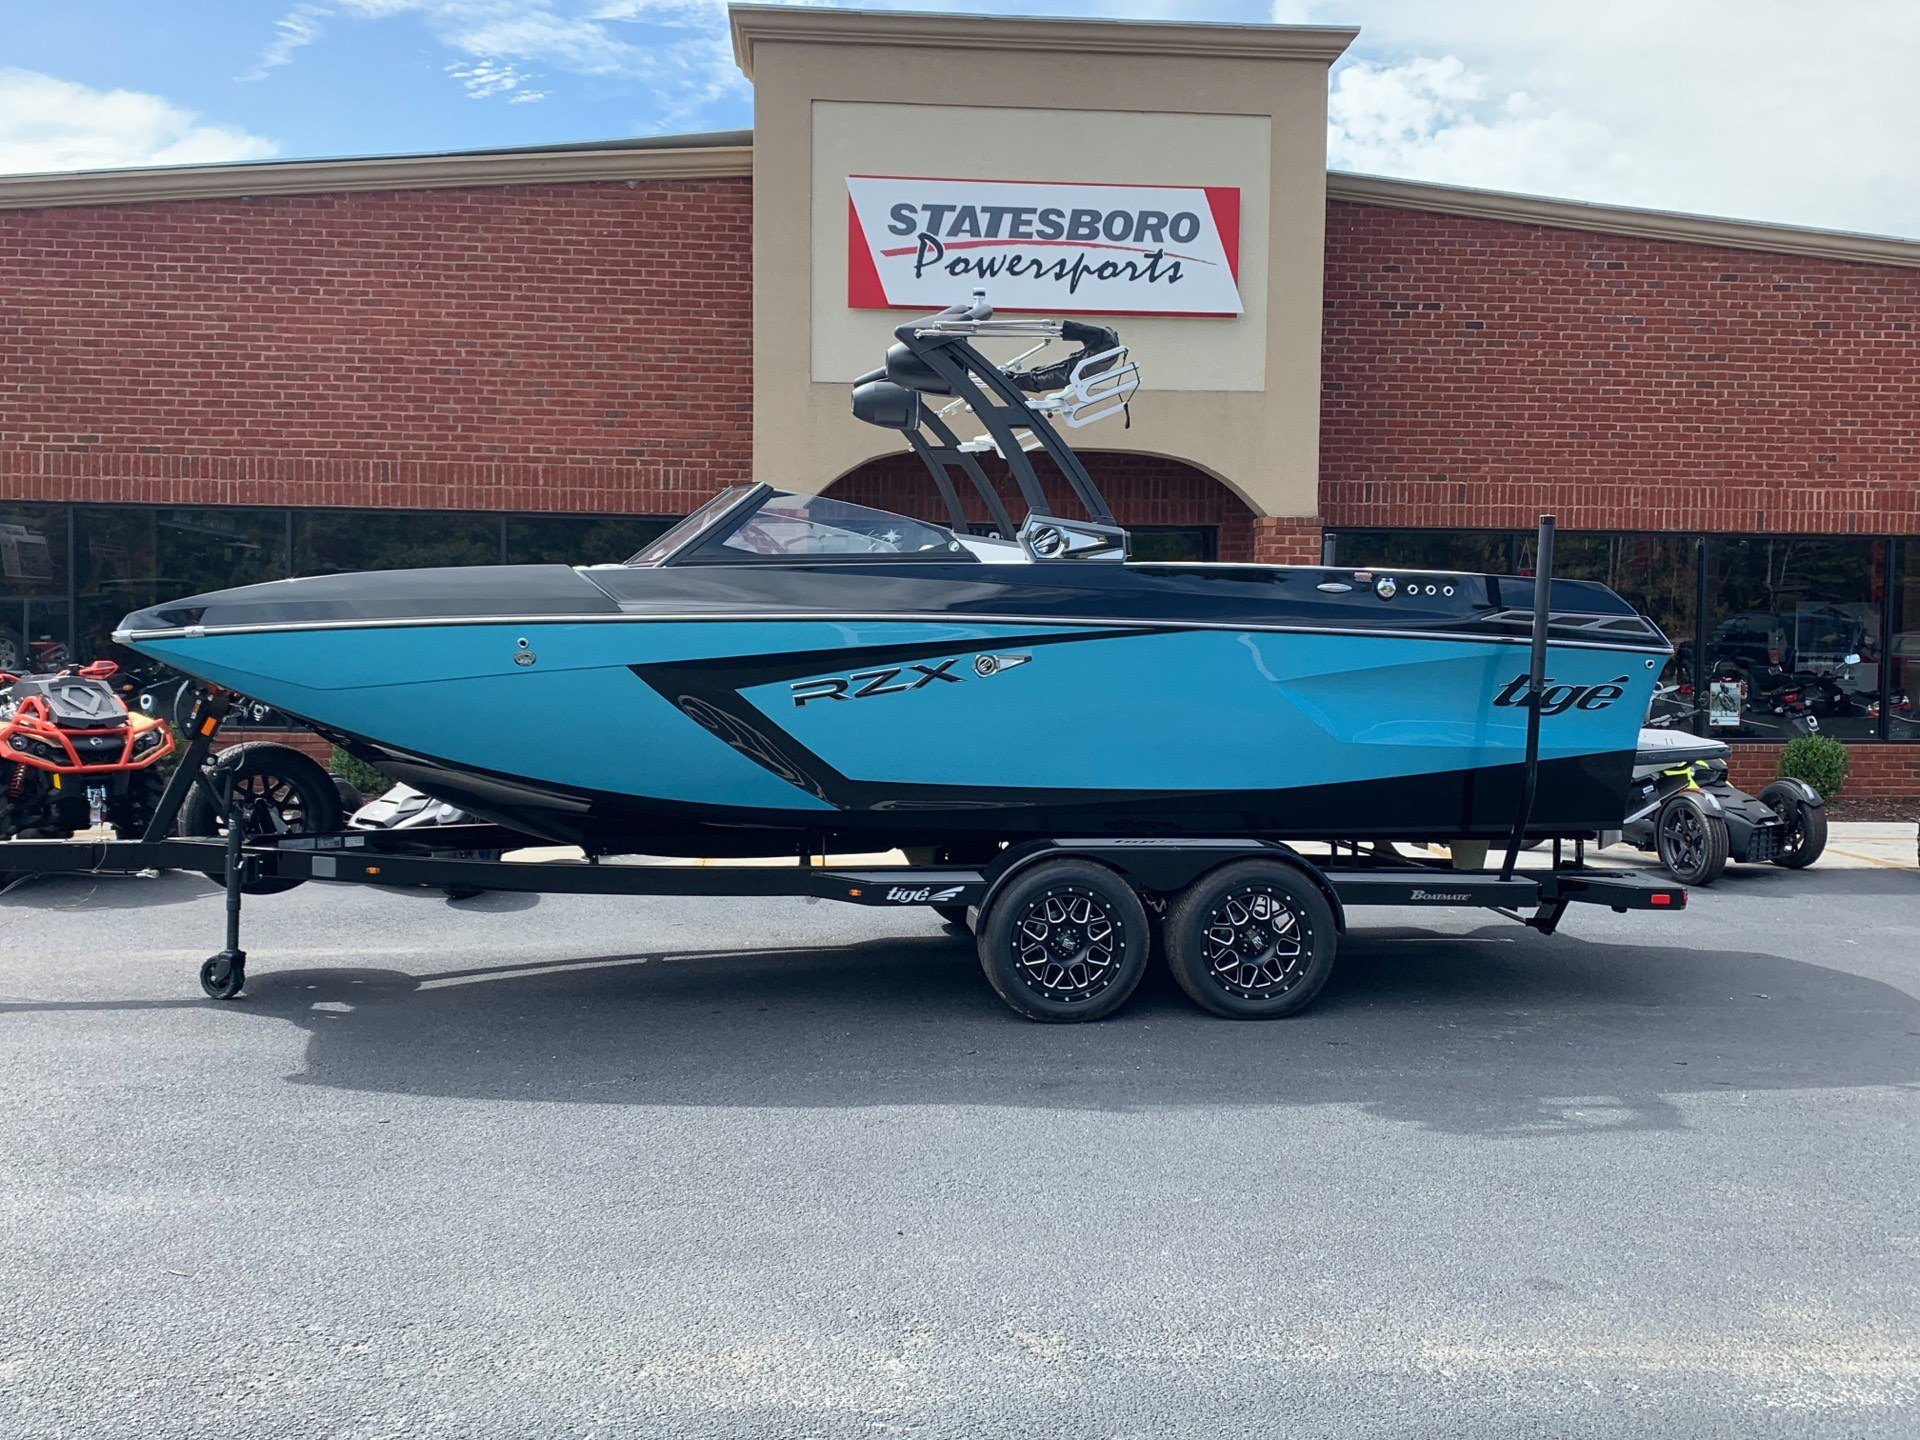 2020 TIGE 23RZX in Statesboro, Georgia - Photo 1